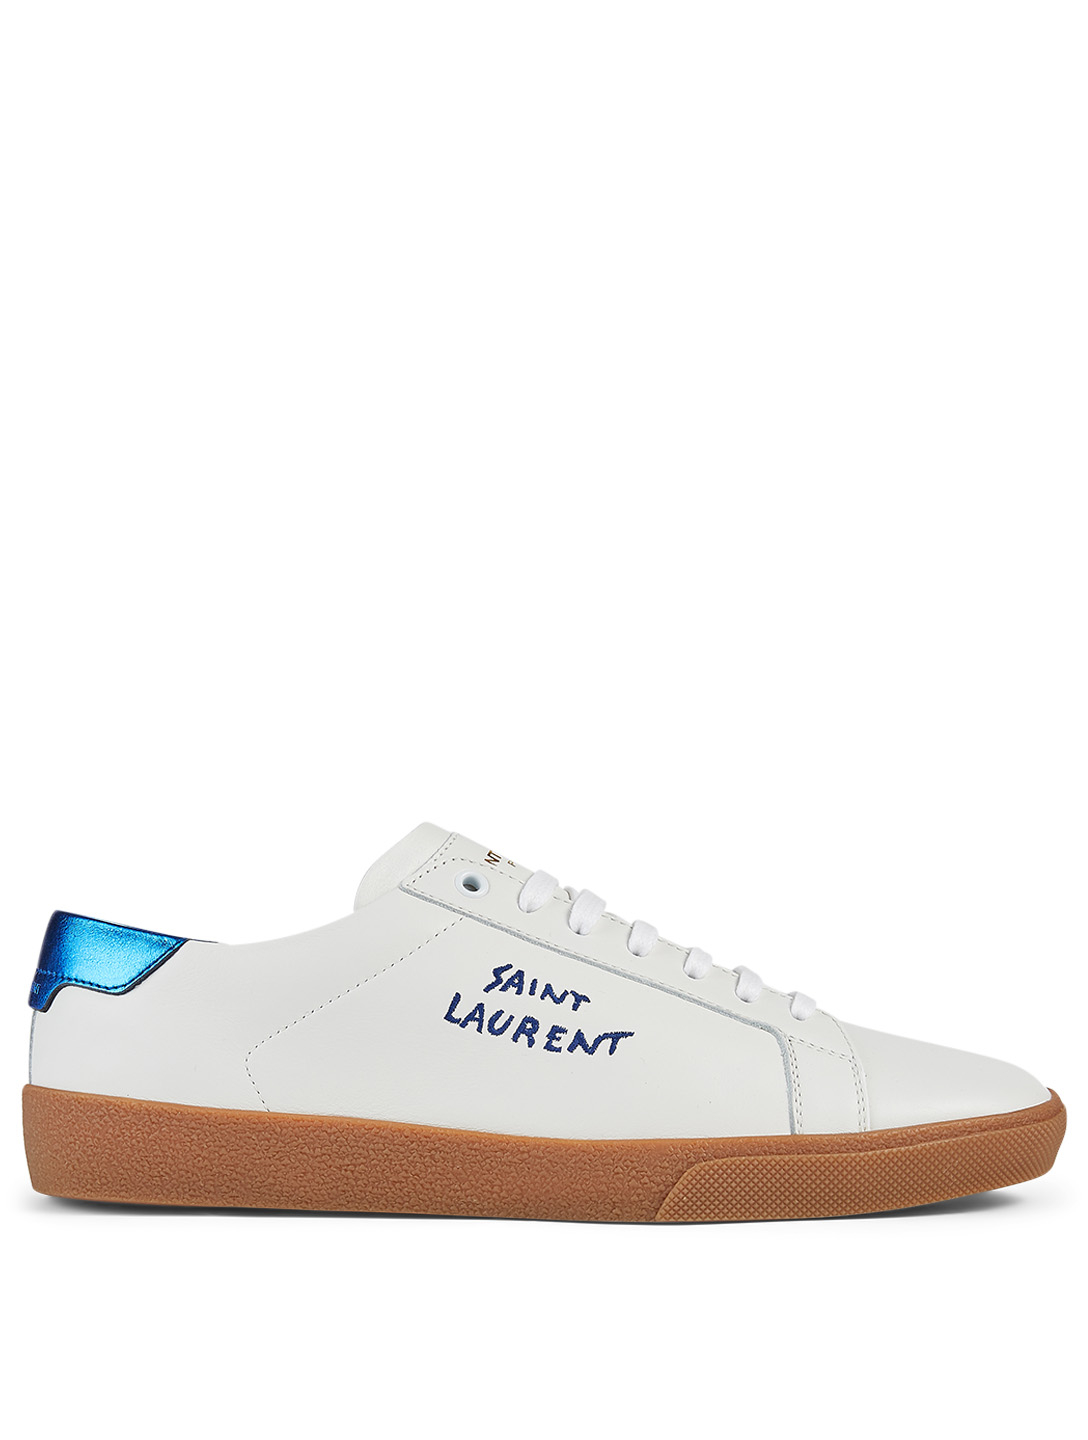 SAINT LAURENT Court Classic SL/06 Leather Sneakers With Metallic Tab Men's White